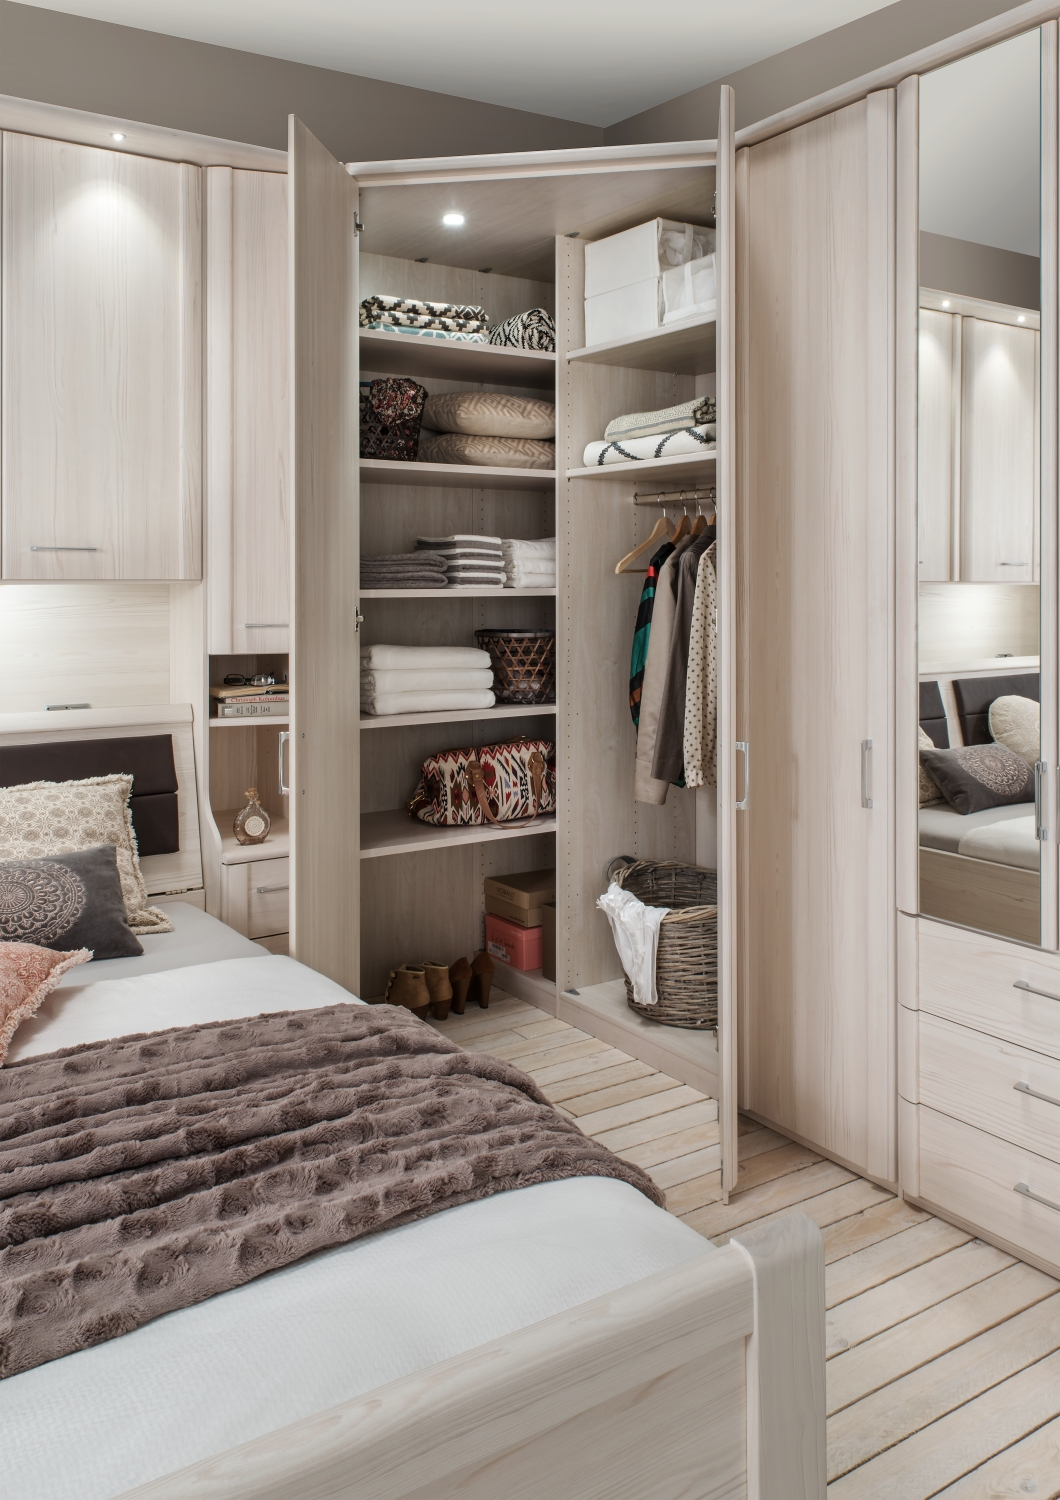 Luxor Bedrooms Amp Wardrobes By Wiemann Uk